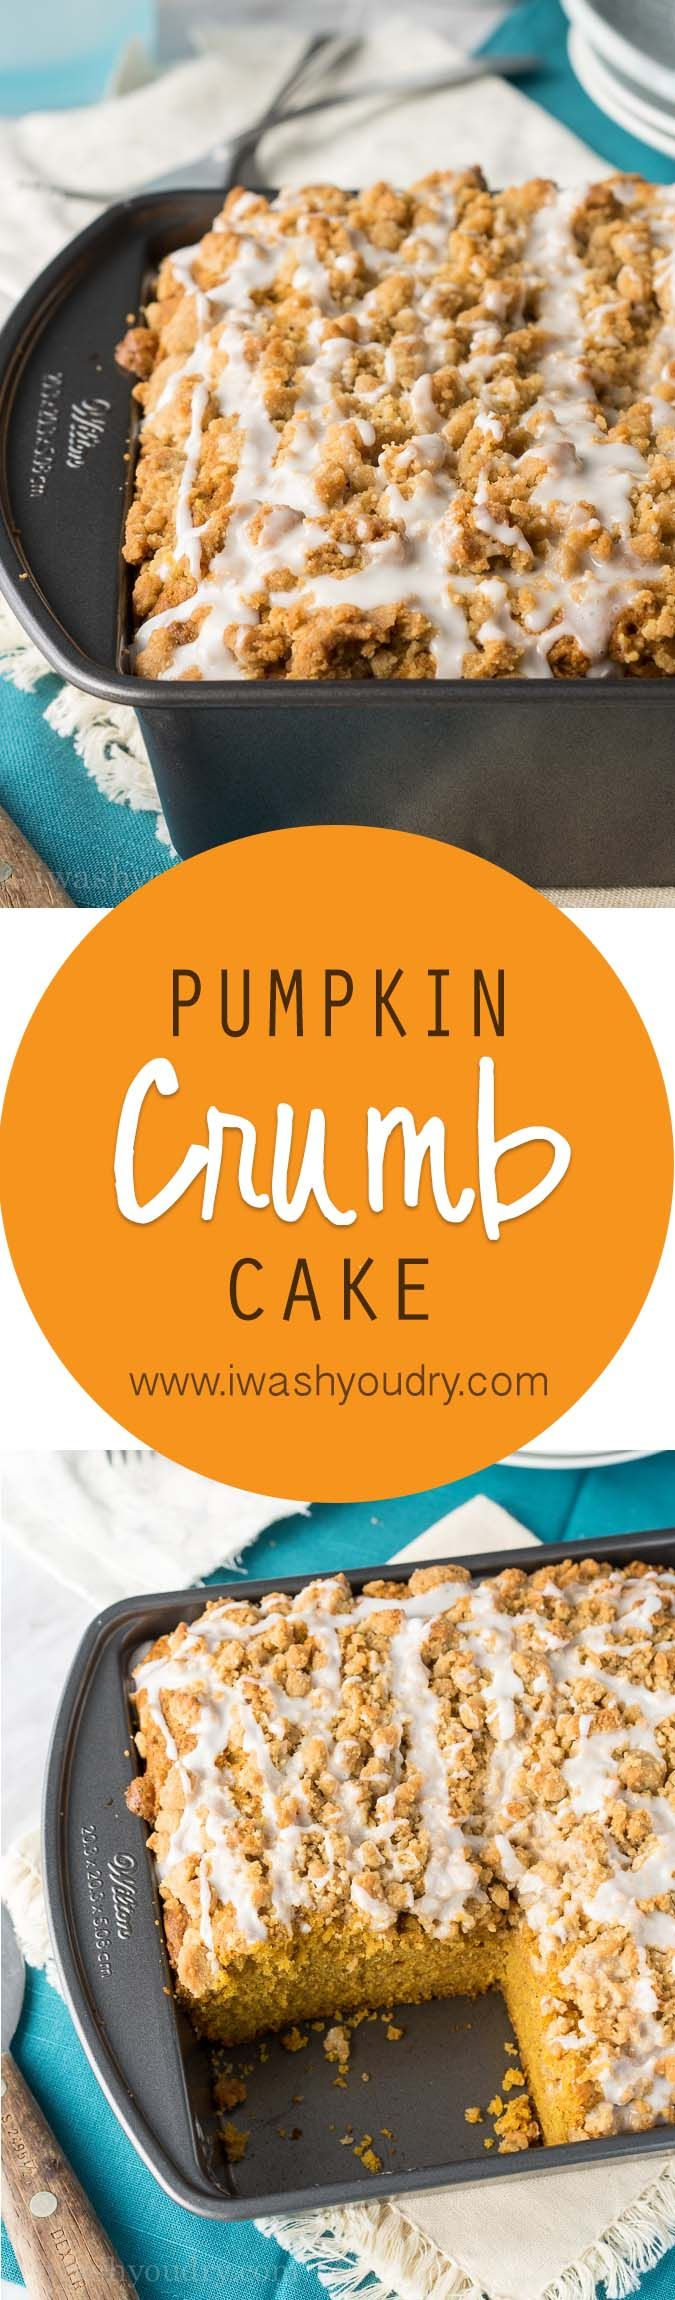 The most soft and delicious Pumpkin Crumb Cake with a sweet icing drizzled over…